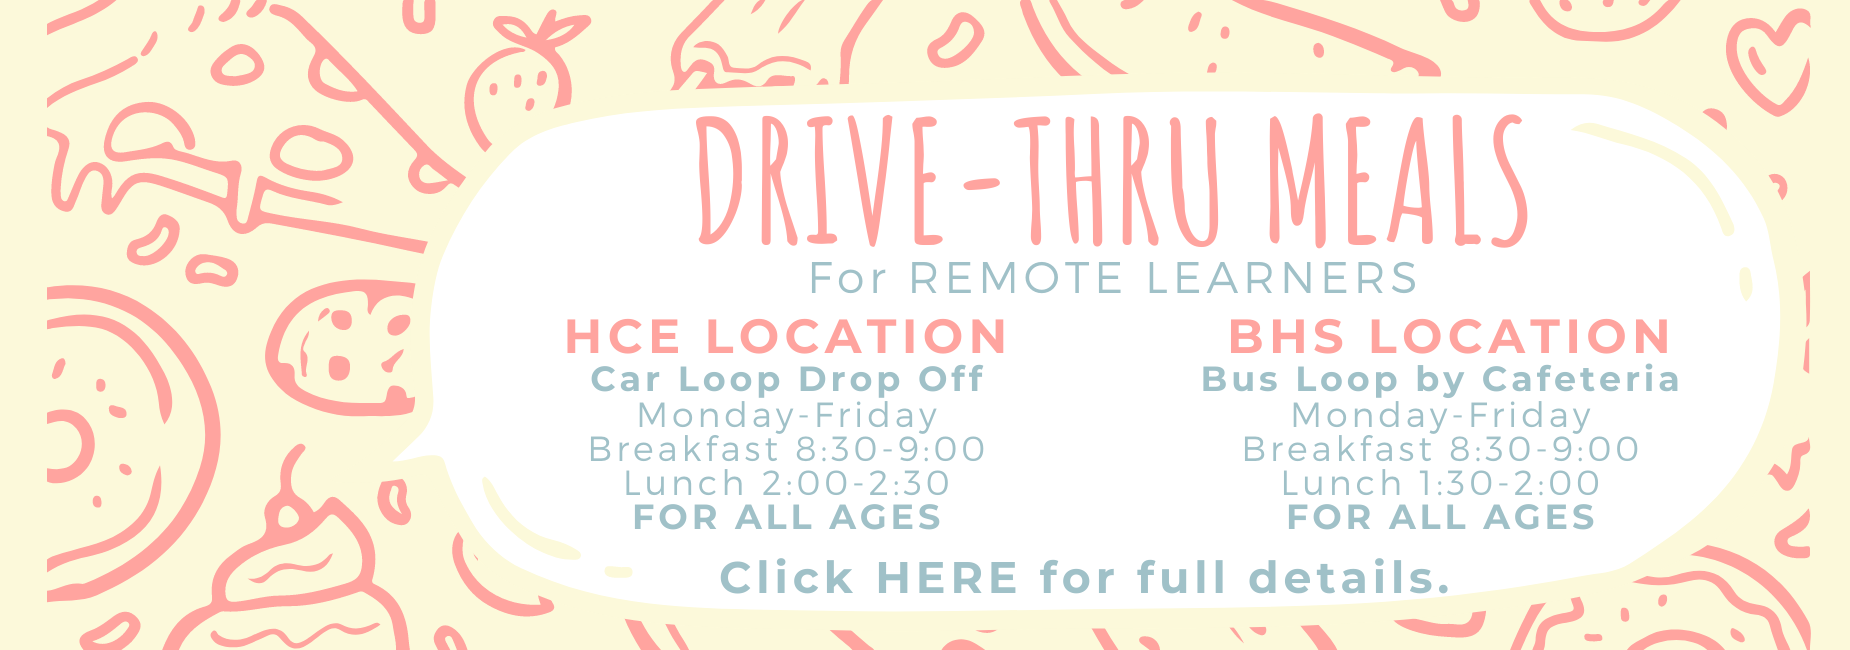 Drive through meals for remote learners.